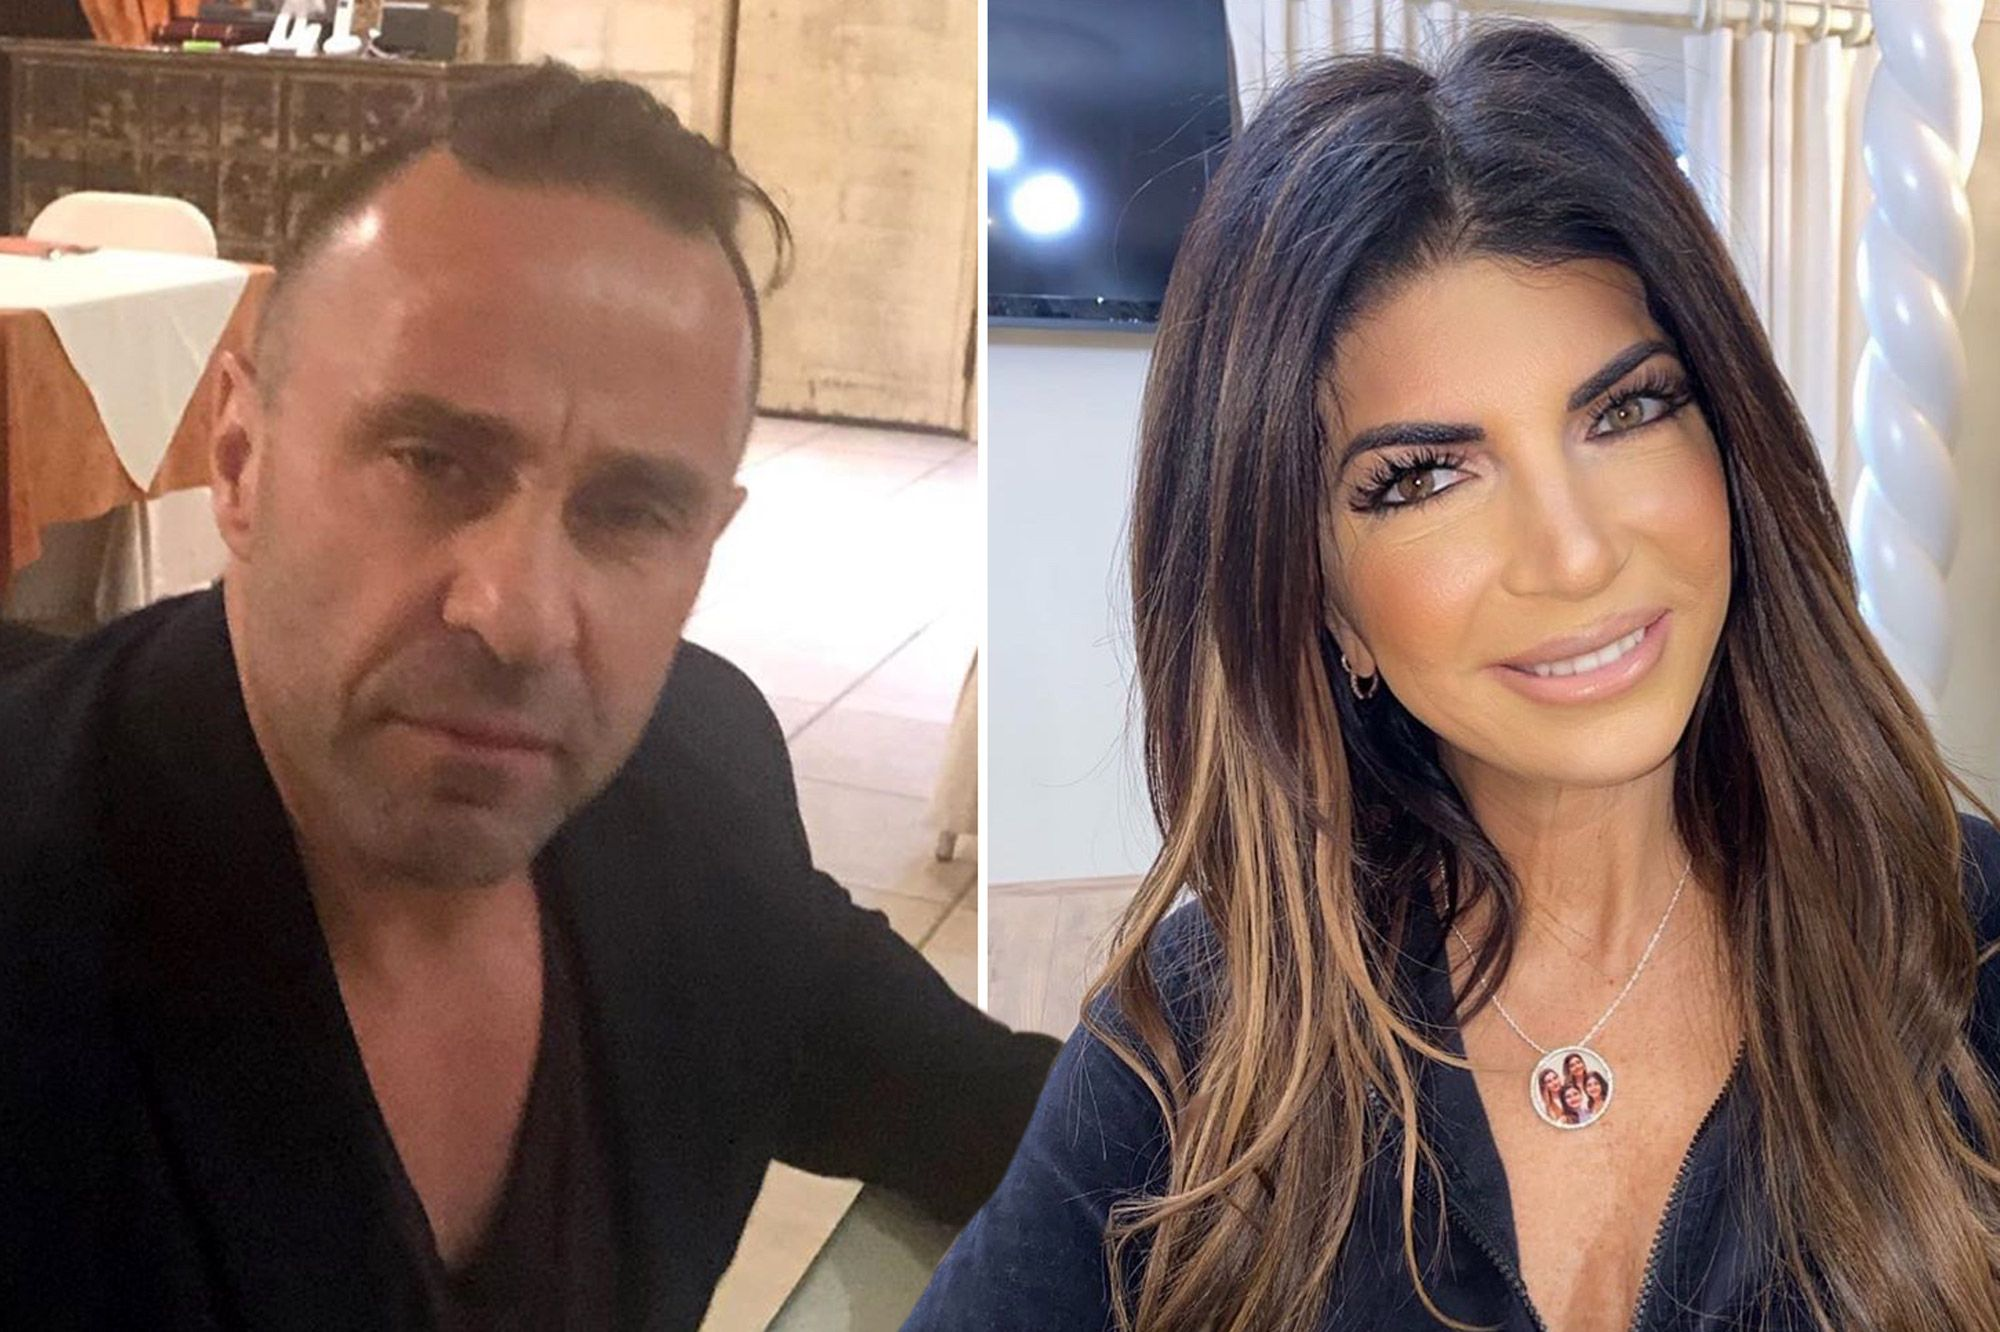 joe-giudice-claims-he-does-not-miss-being-married-to-teresa-giudice-heres-why